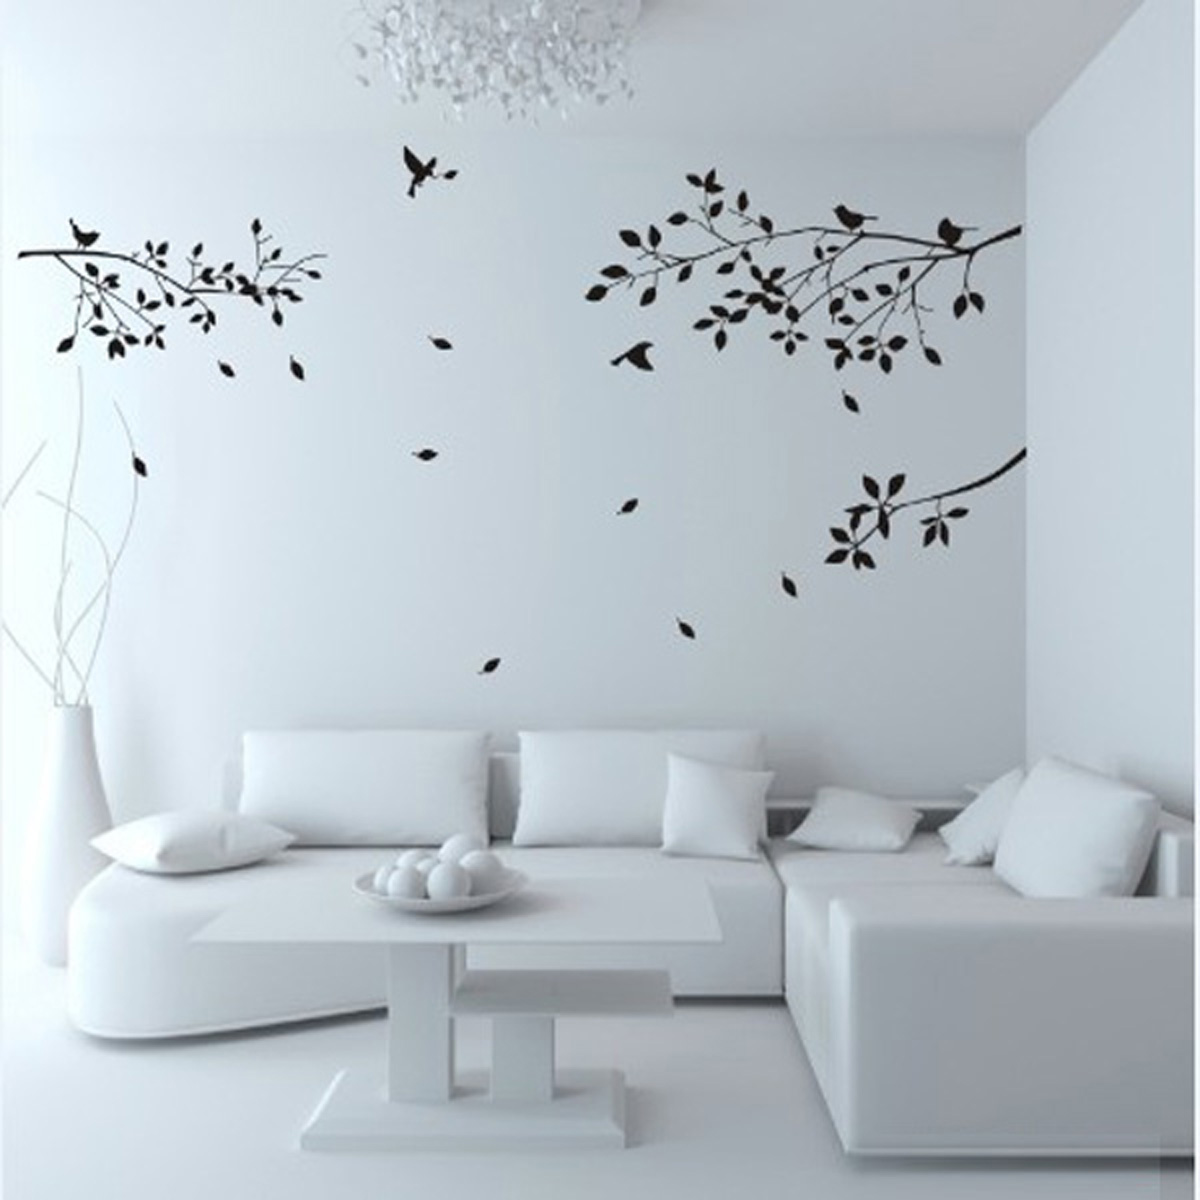 sticker autocollant mural papillon fleur arbre letter diy mur chambre salon d co ebay. Black Bedroom Furniture Sets. Home Design Ideas